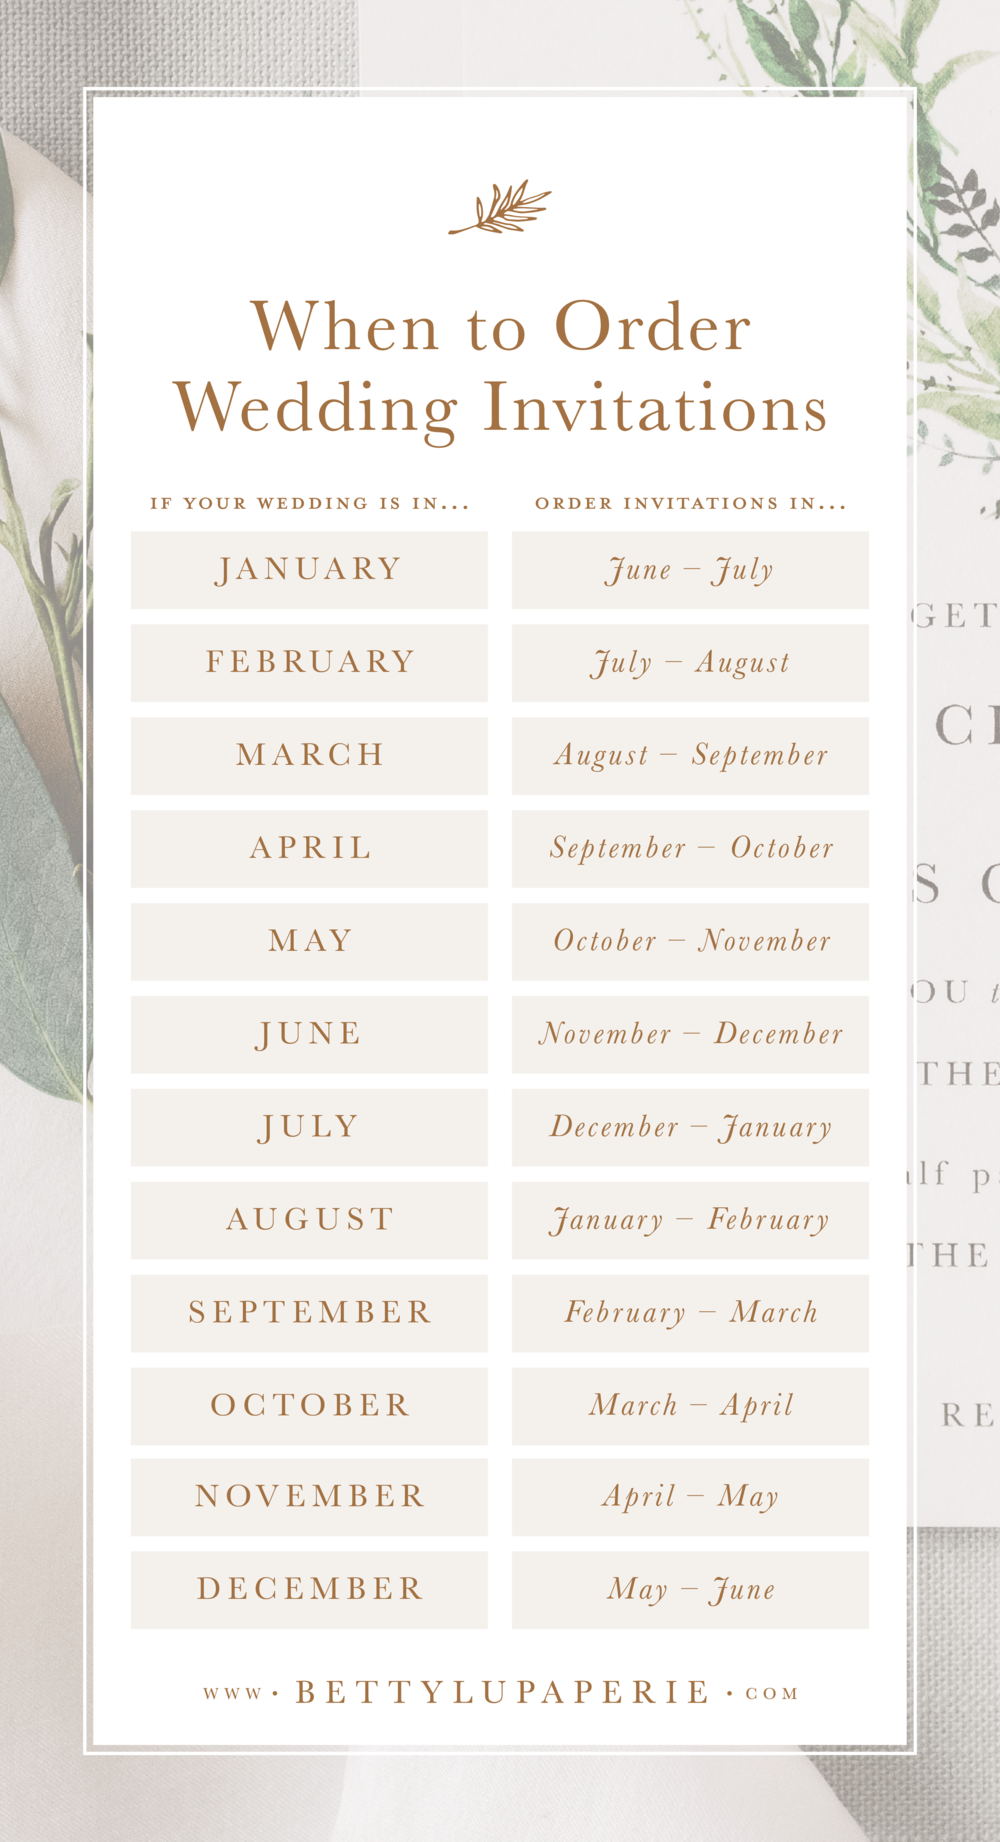 When to Order Wedding Invitations.png